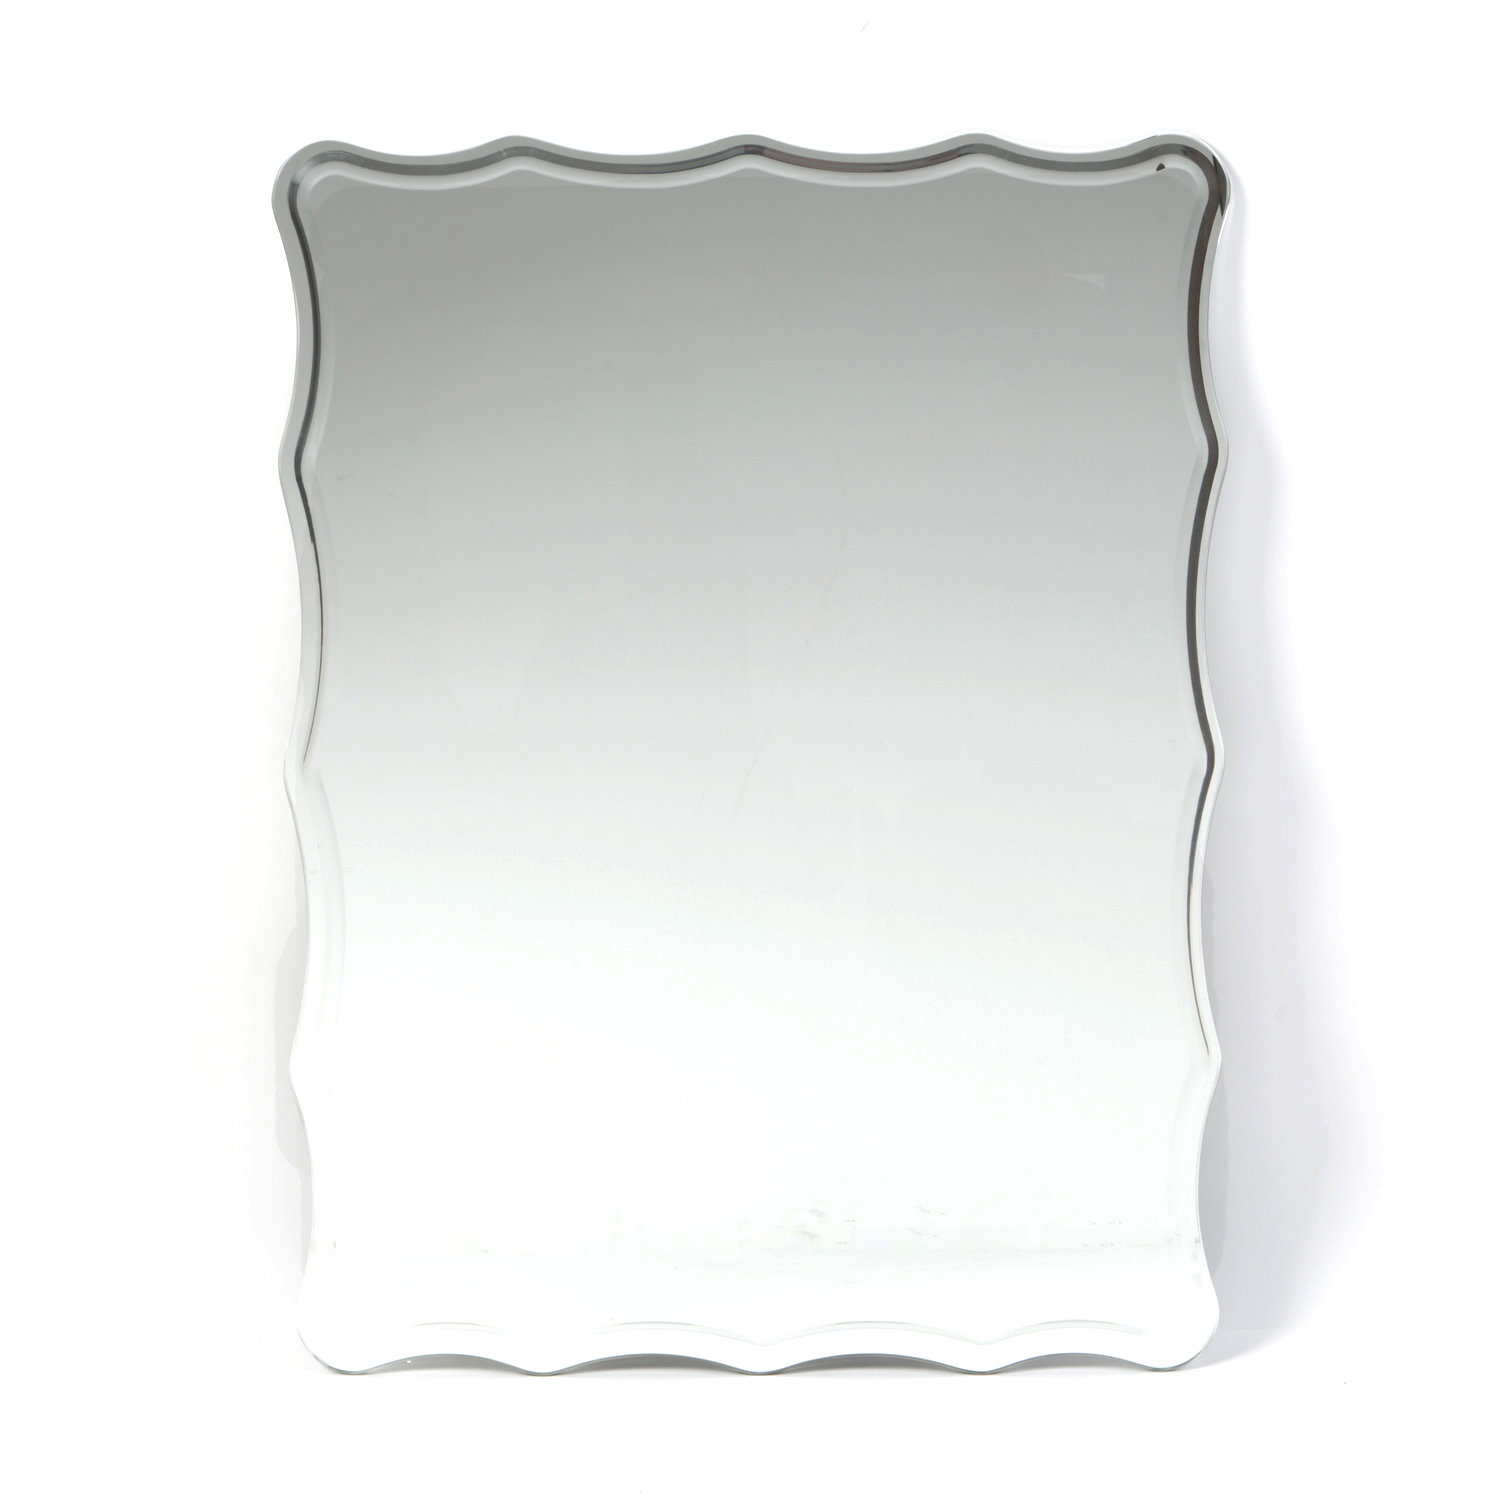 Estefania Frameless Wall Mirror pertaining to Estefania Frameless Wall Mirrors (Image 11 of 30)